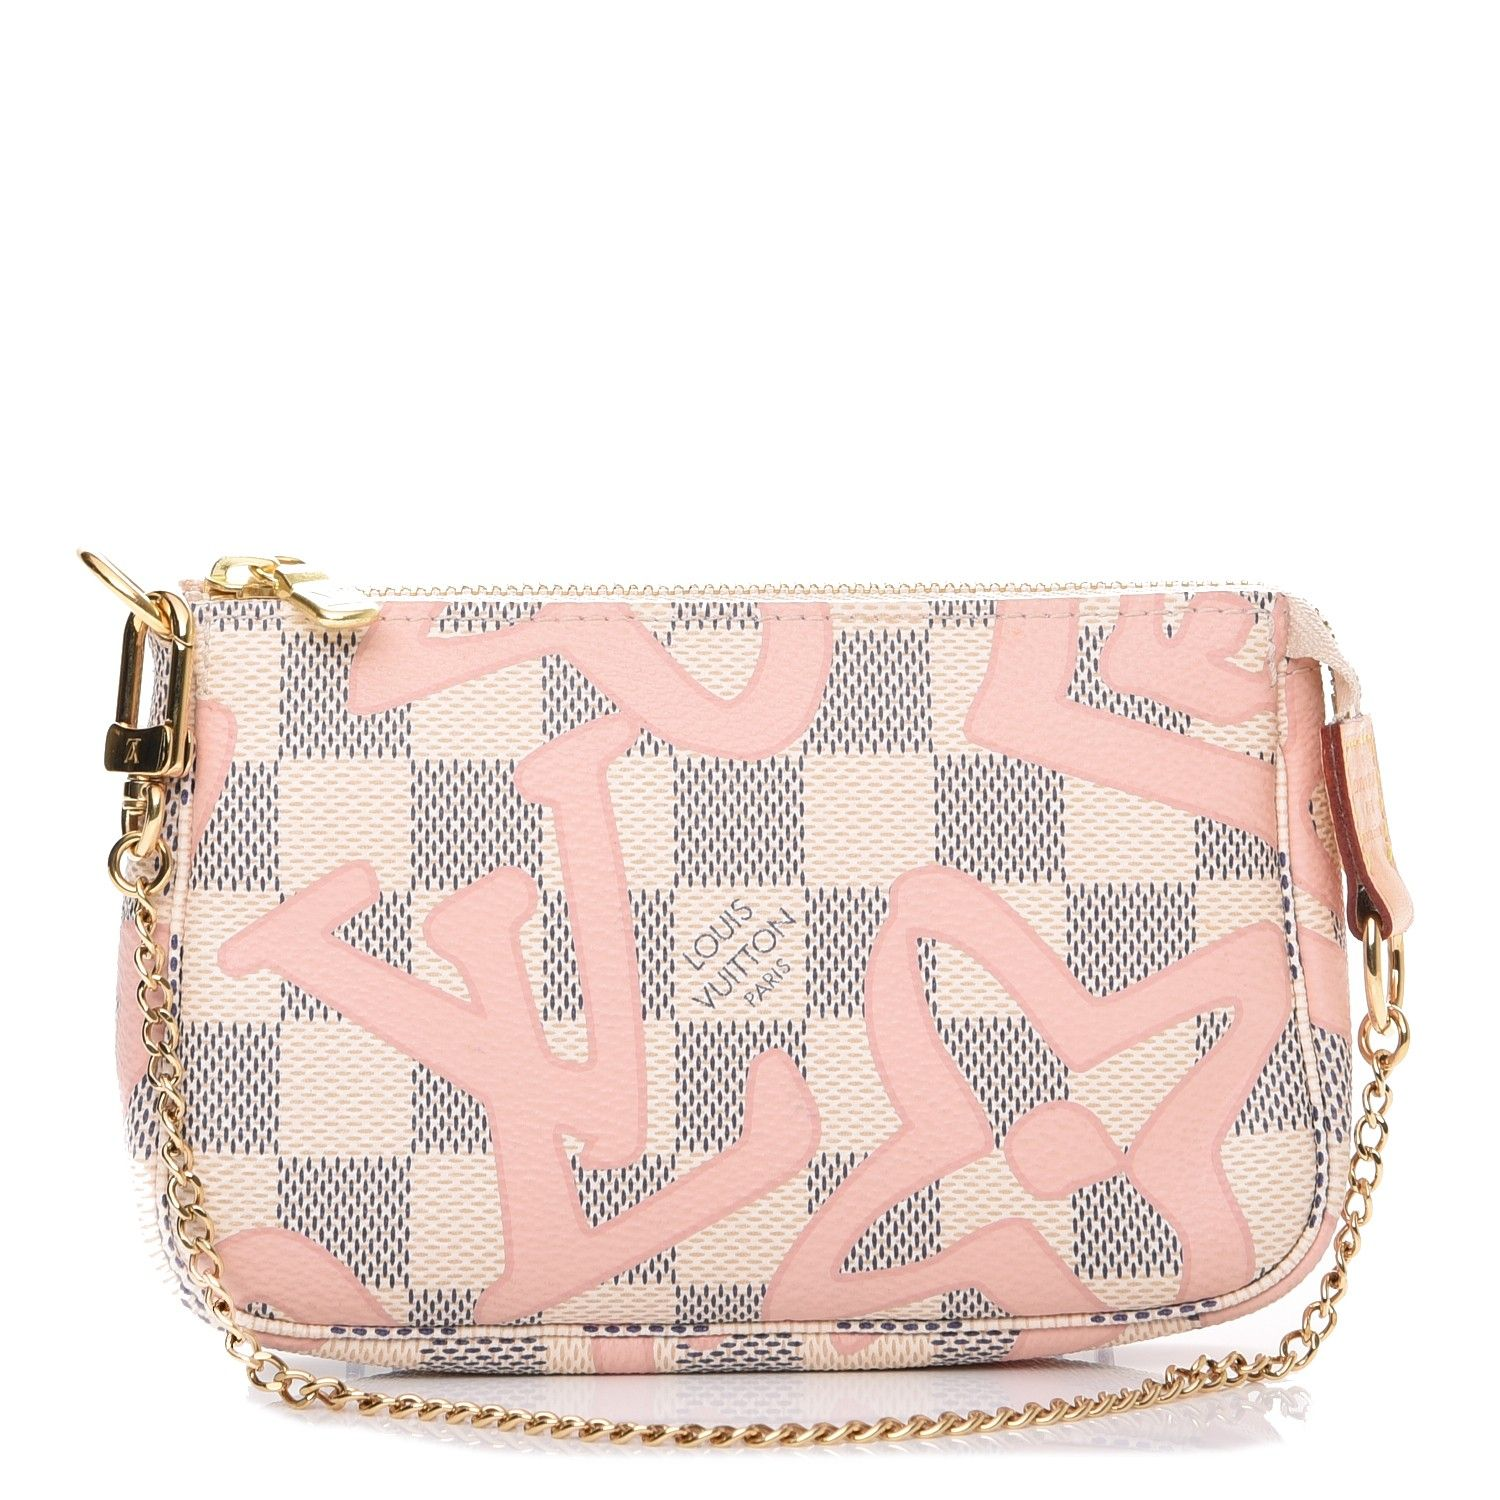 6141bf825b6b This is an authentic LOUIS VUITTON Damier Azur Tahitienne Mini Pochette  Accessories. This stylish small